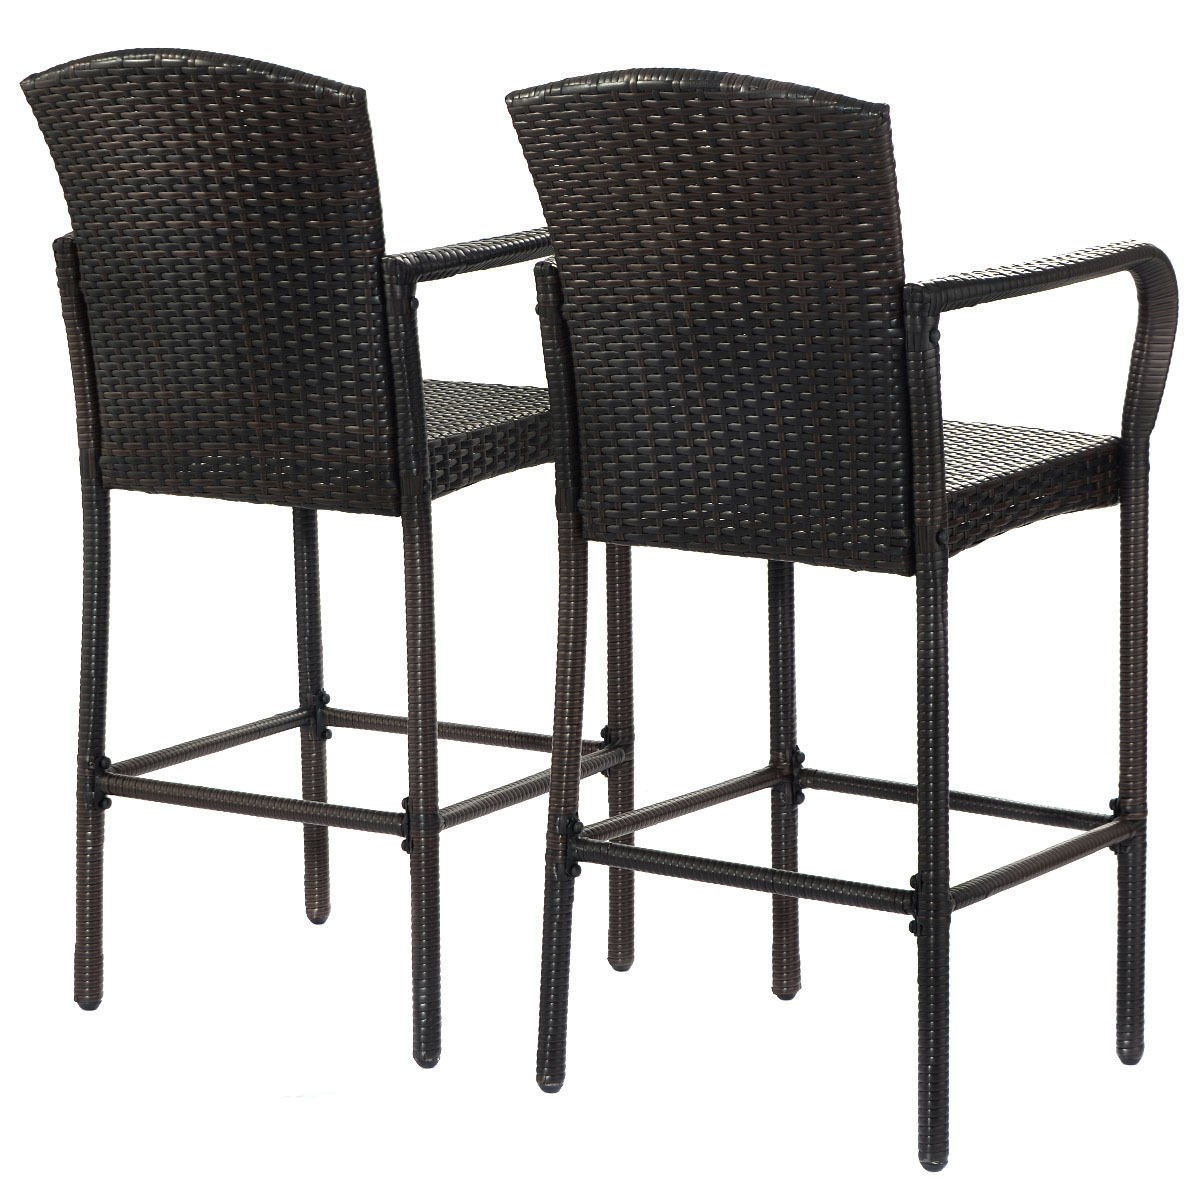 Outdoor Wicker Counter Height Bar Stools Chair Adorable